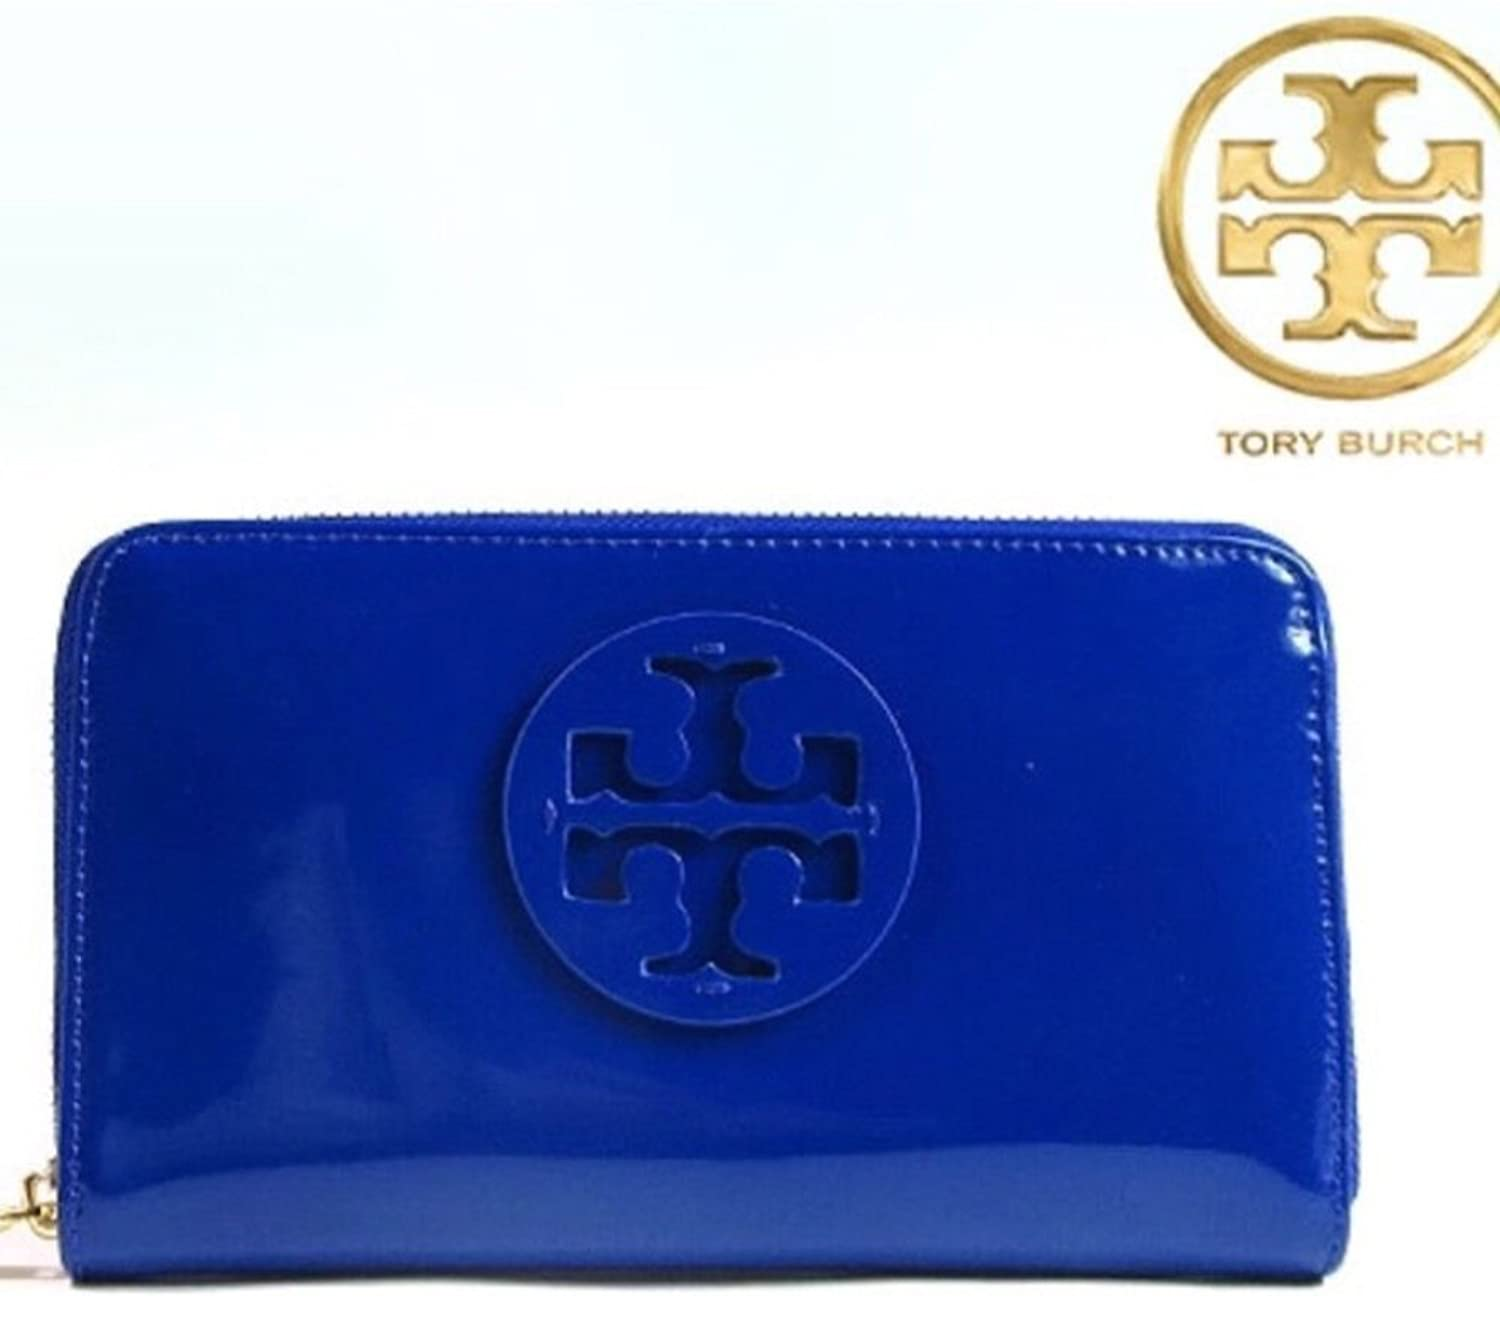 Amazon tory burch 18169285 stacked patent zip purse royal blue amazon tory burch 18169285 stacked patent zip purse royal blue ladies watches buycottarizona Images